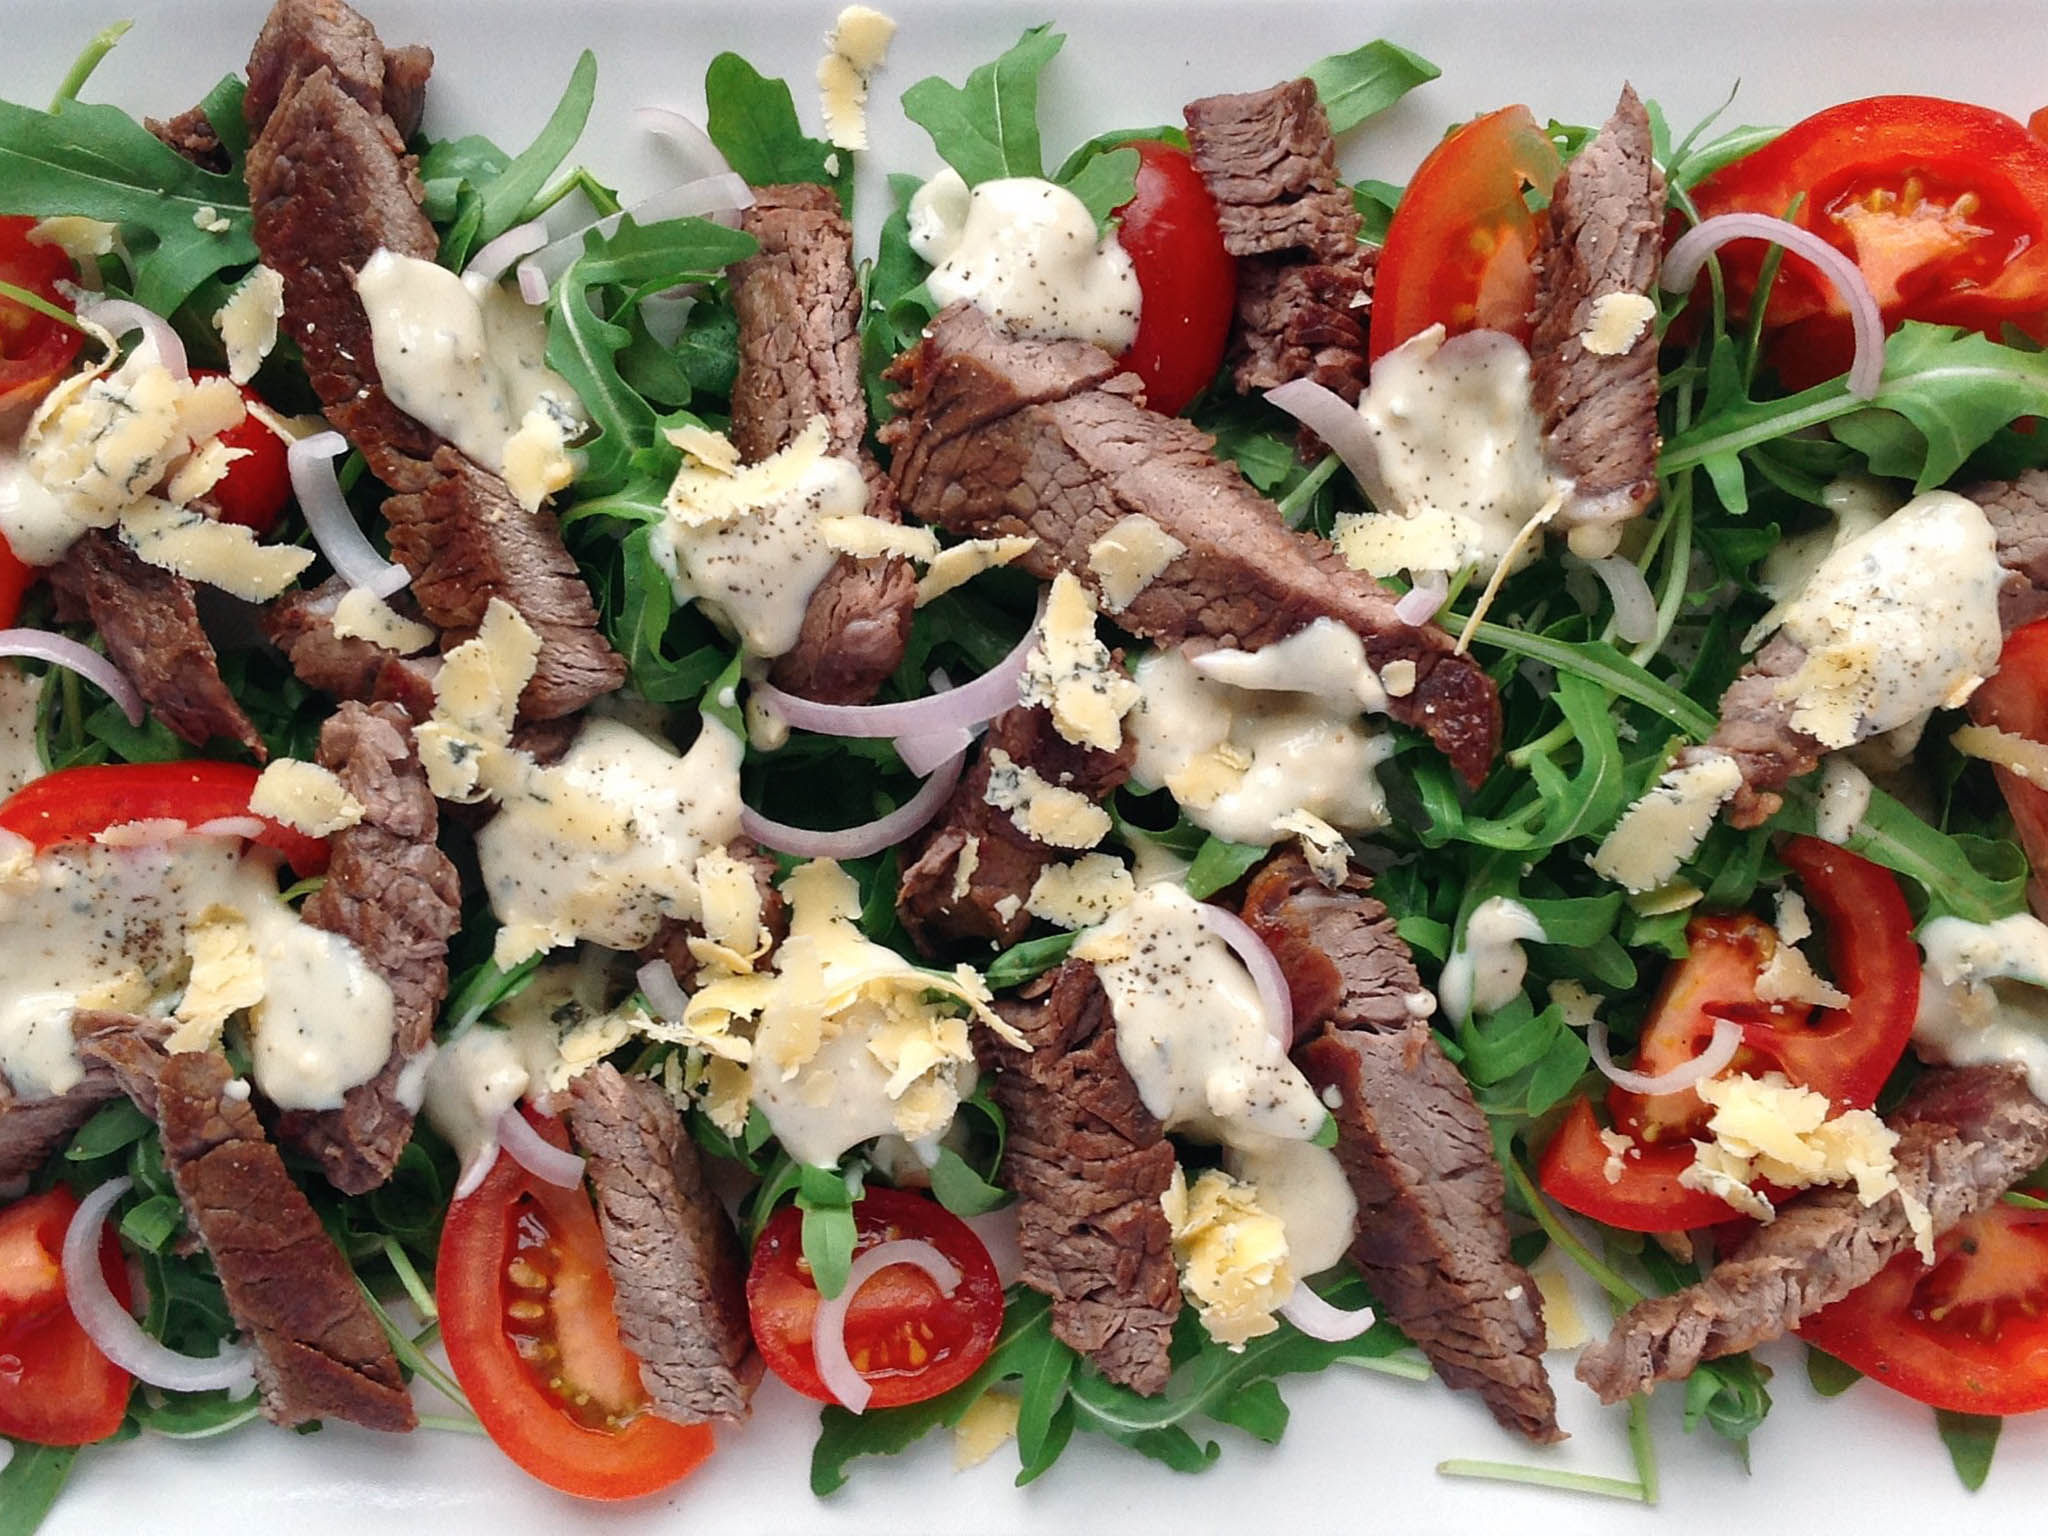 How to make warm steak and tomato salad with creamy blue cheese dressing 1